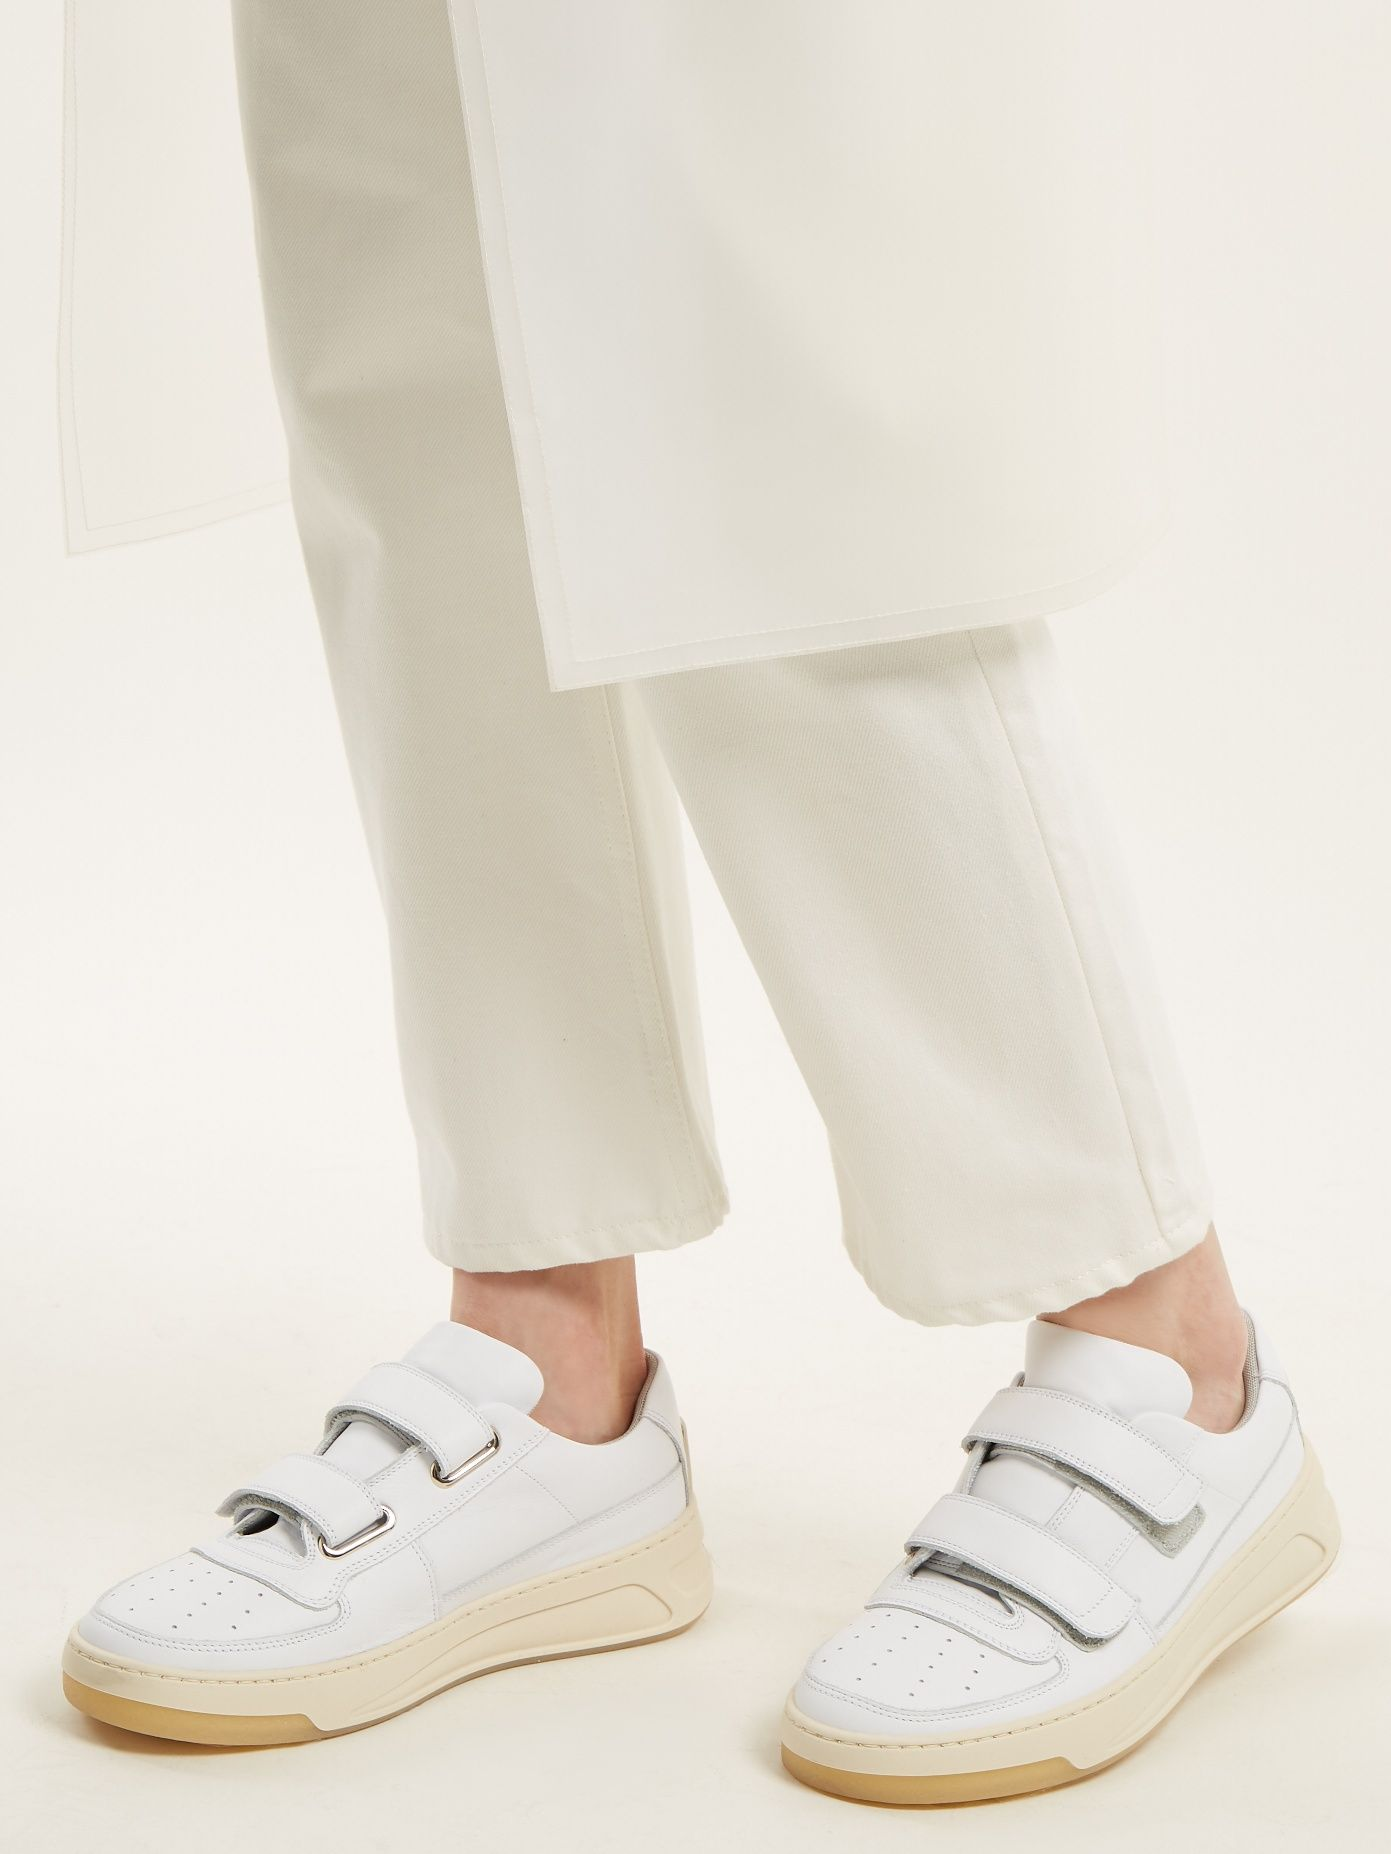 9ce90320e4d9 Click here to buy Acne Studios Steffey low-top Velcro-strap leather  trainers at MATCHESFASHION.COM